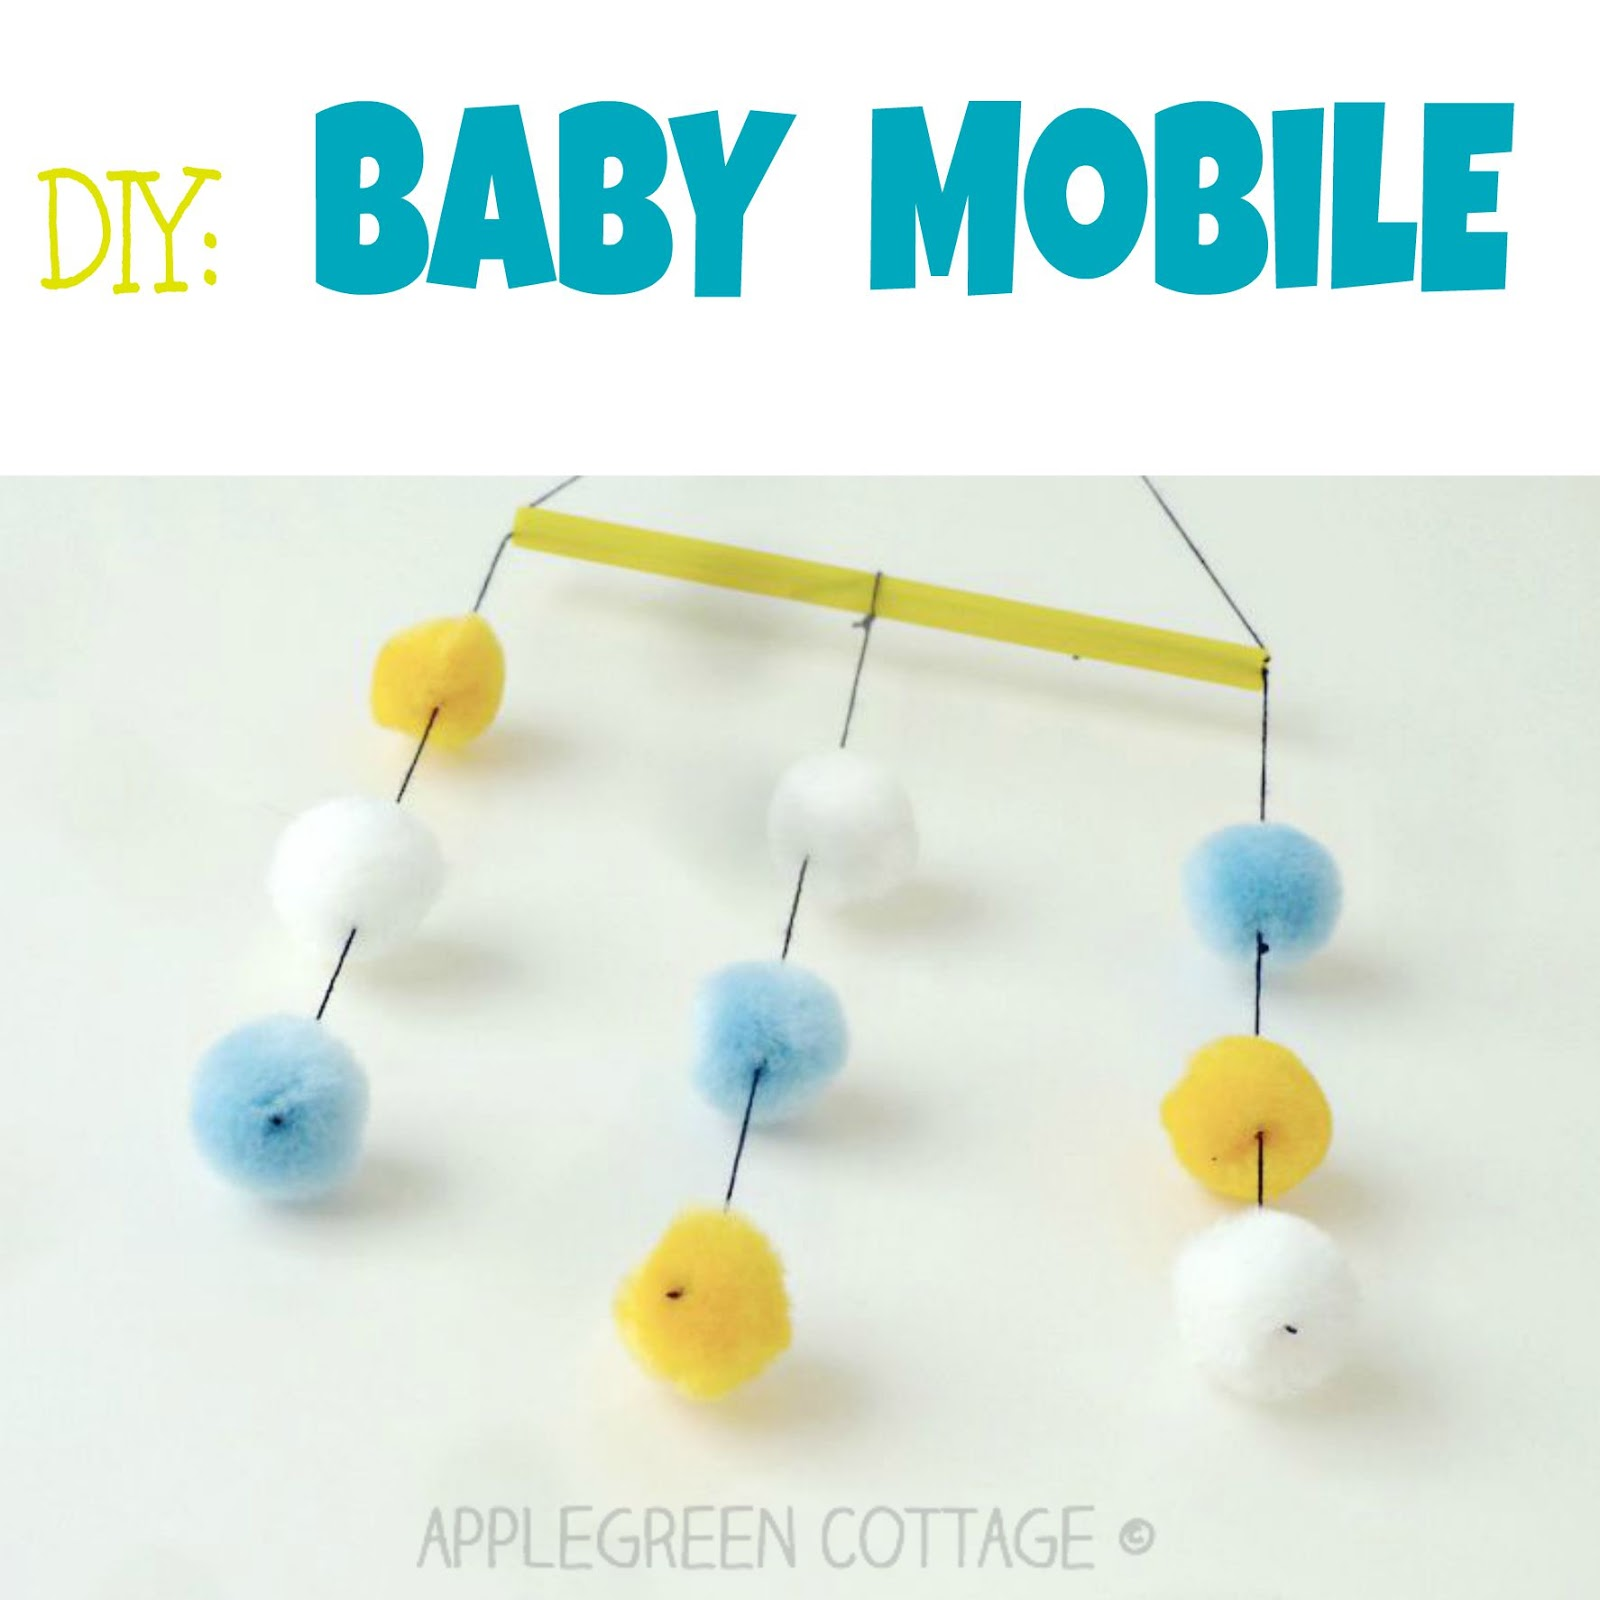 How To Make DIY Crib Mobile - Easy & Cute